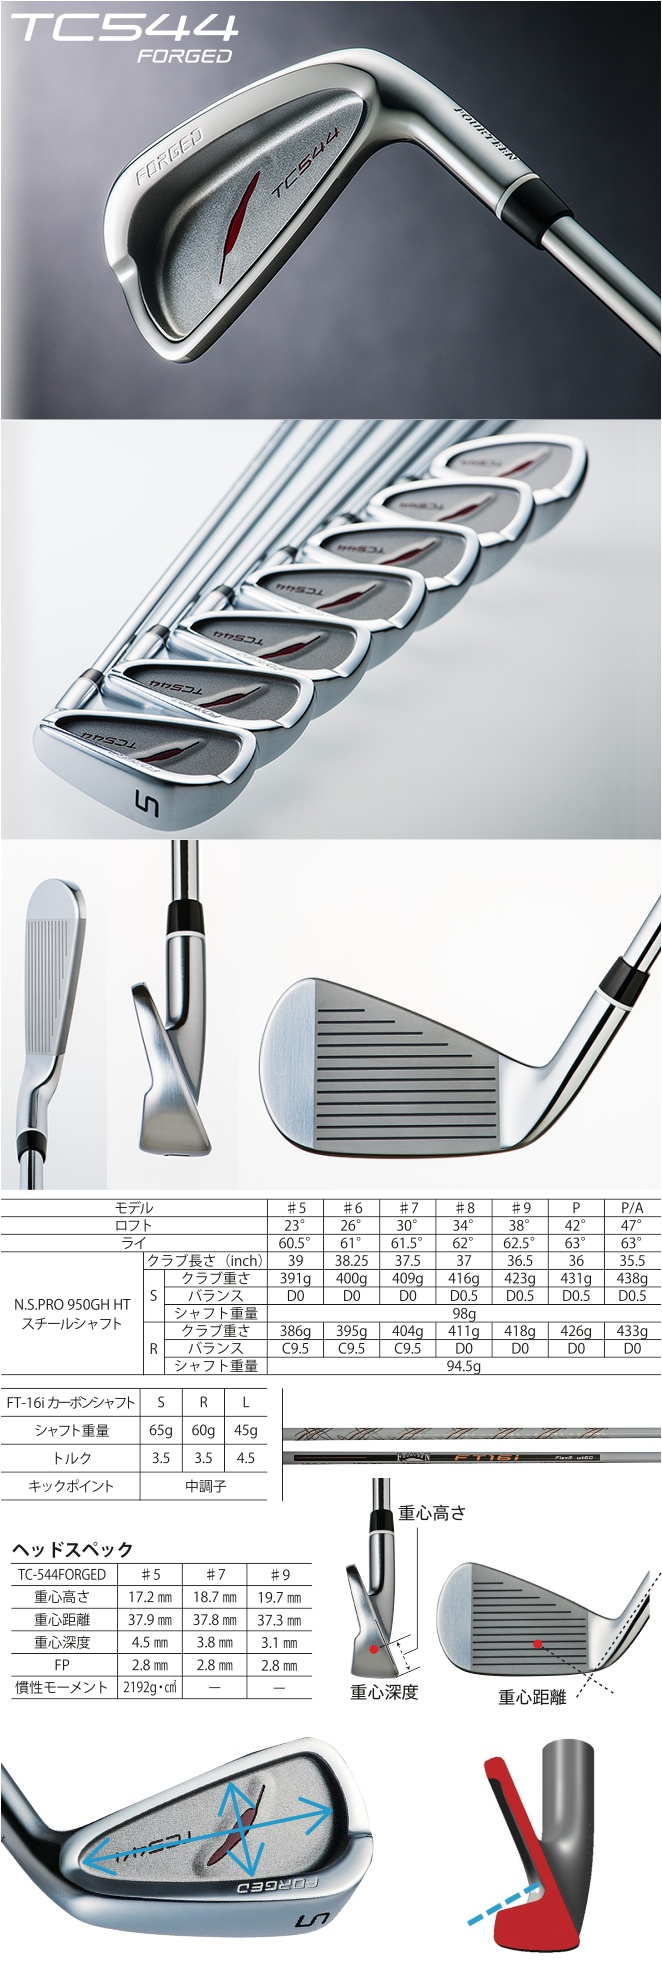 Fourteen TC-544 Forged Iron